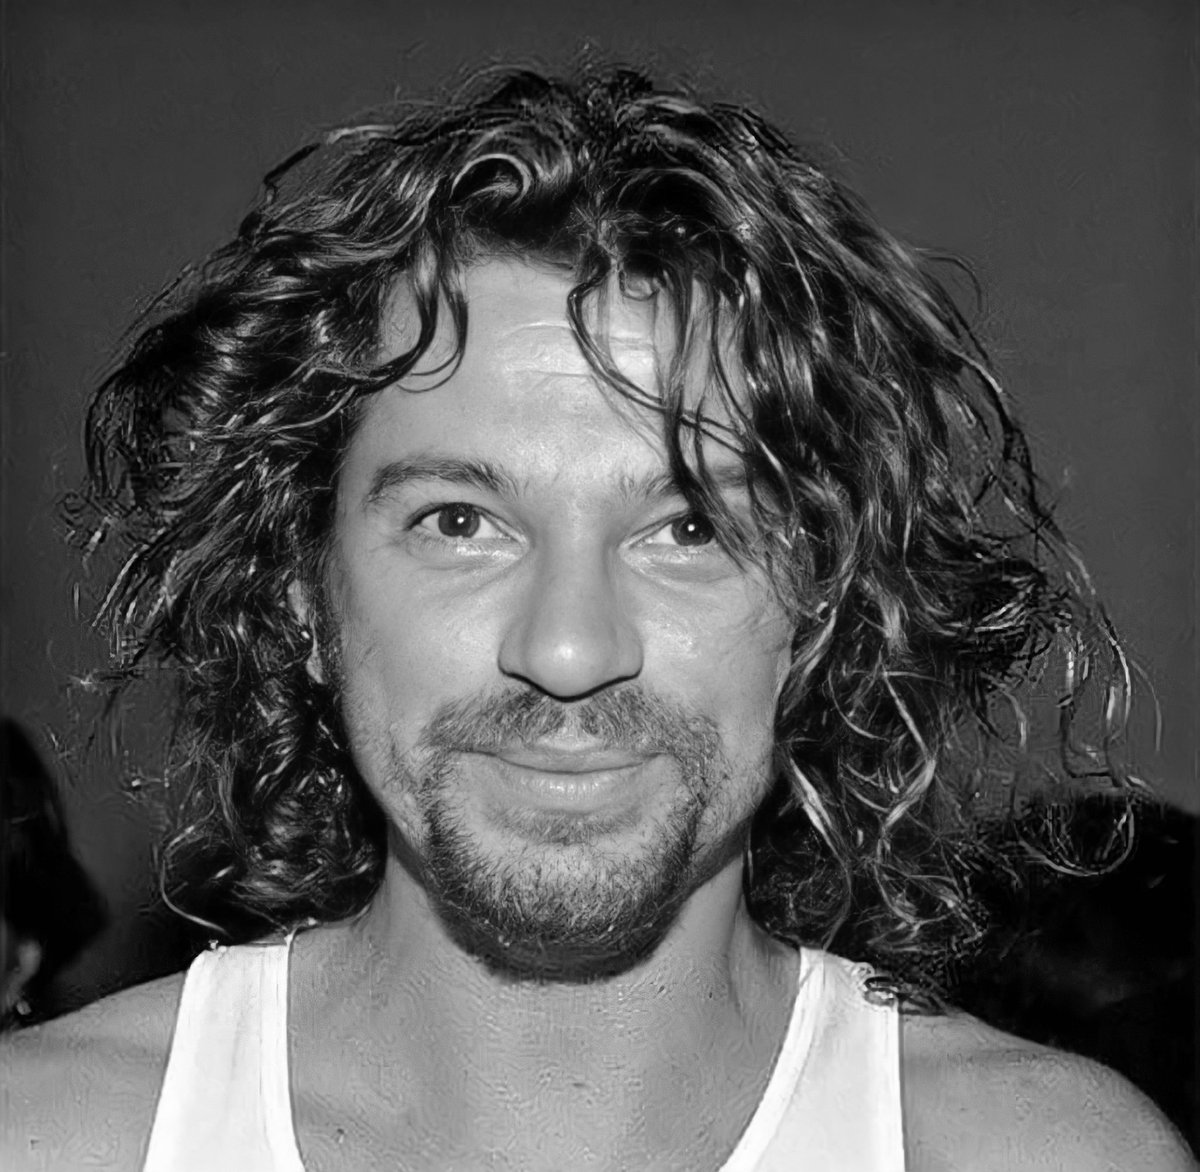 Giving you all Flashback Friday smile from Michael.  Have a wonderful weekend. ✌🏼🎸🎤  #MichaelHutchence #INXS #80s #90s #Rockandroll #Fridayvibes